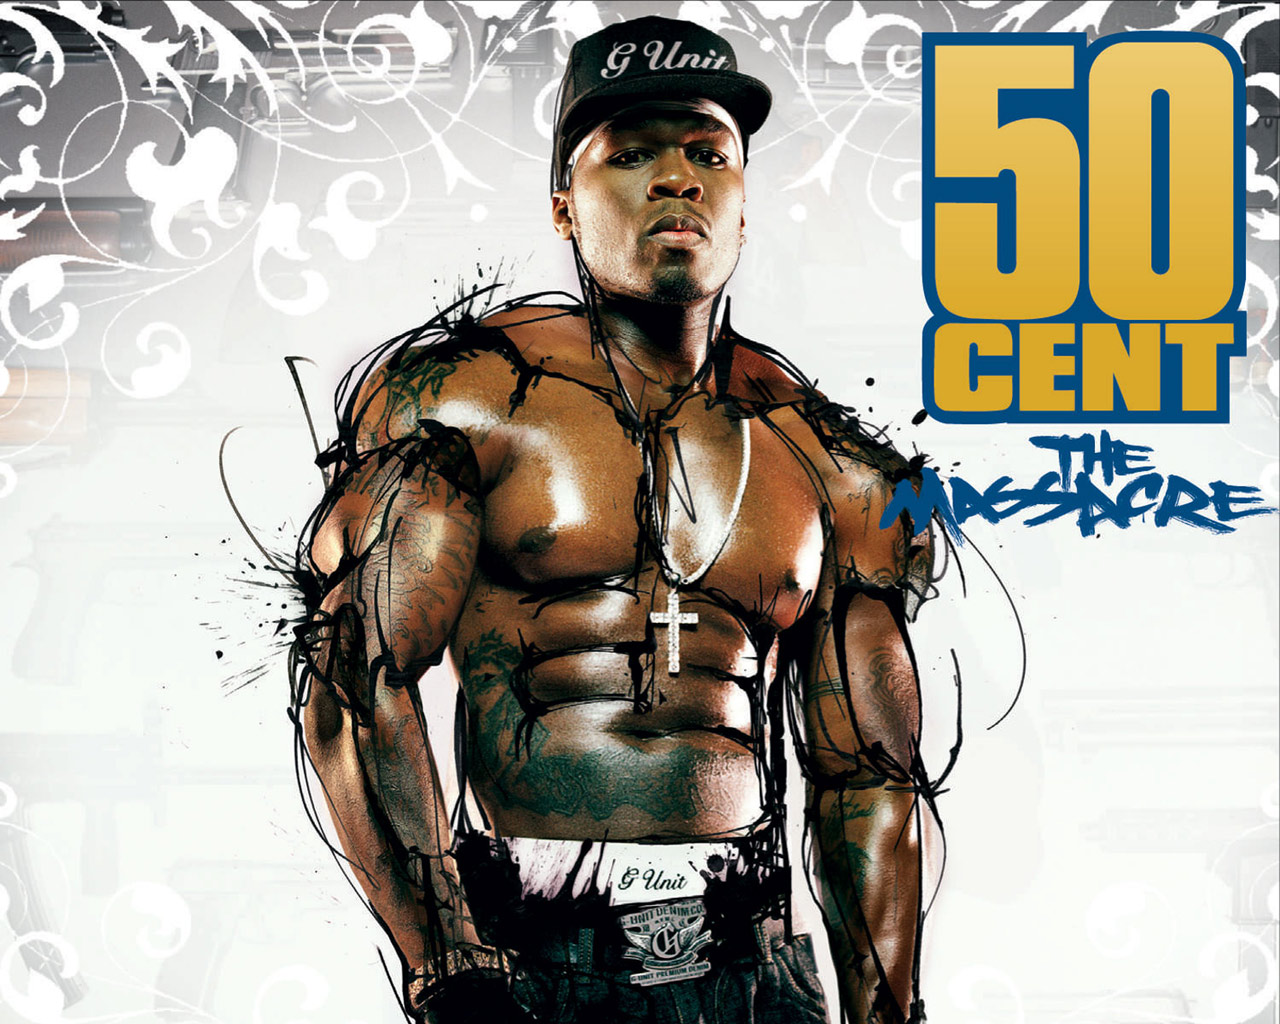 50 Cent - Photo Gallery